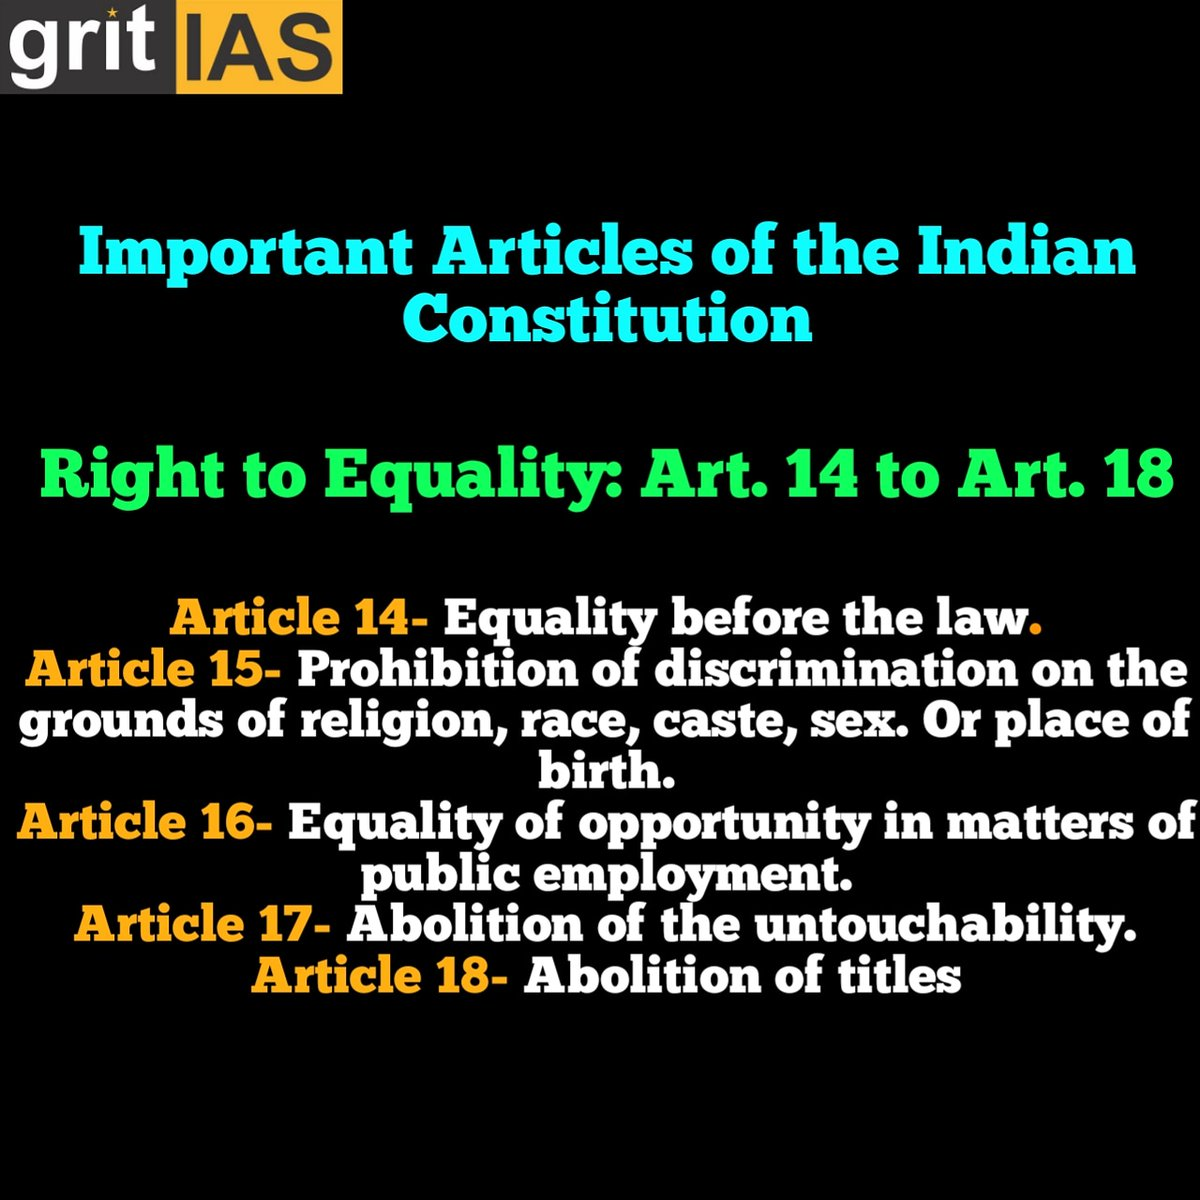 #ias #upsc #india #polity #facts #education #grit #hyderabad #learn #new #goals #engineeringlovers #engineeringfinals #indianconstitution #indianconstitutionday #indian #upscexam #upscmotivation #upsc2019 #upscguide #upscaspirants #upsccoaching #upscpathshala #iasmotivation #IASpic.twitter.com/052LjTUpAw